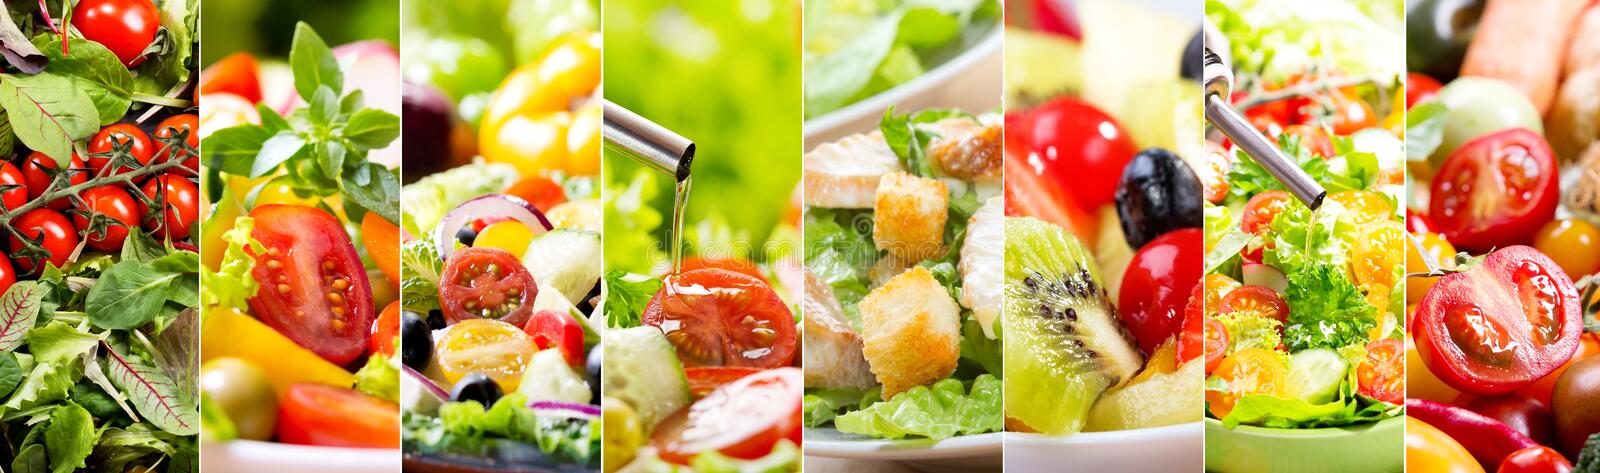 Collage of various salad royalty free stock photography